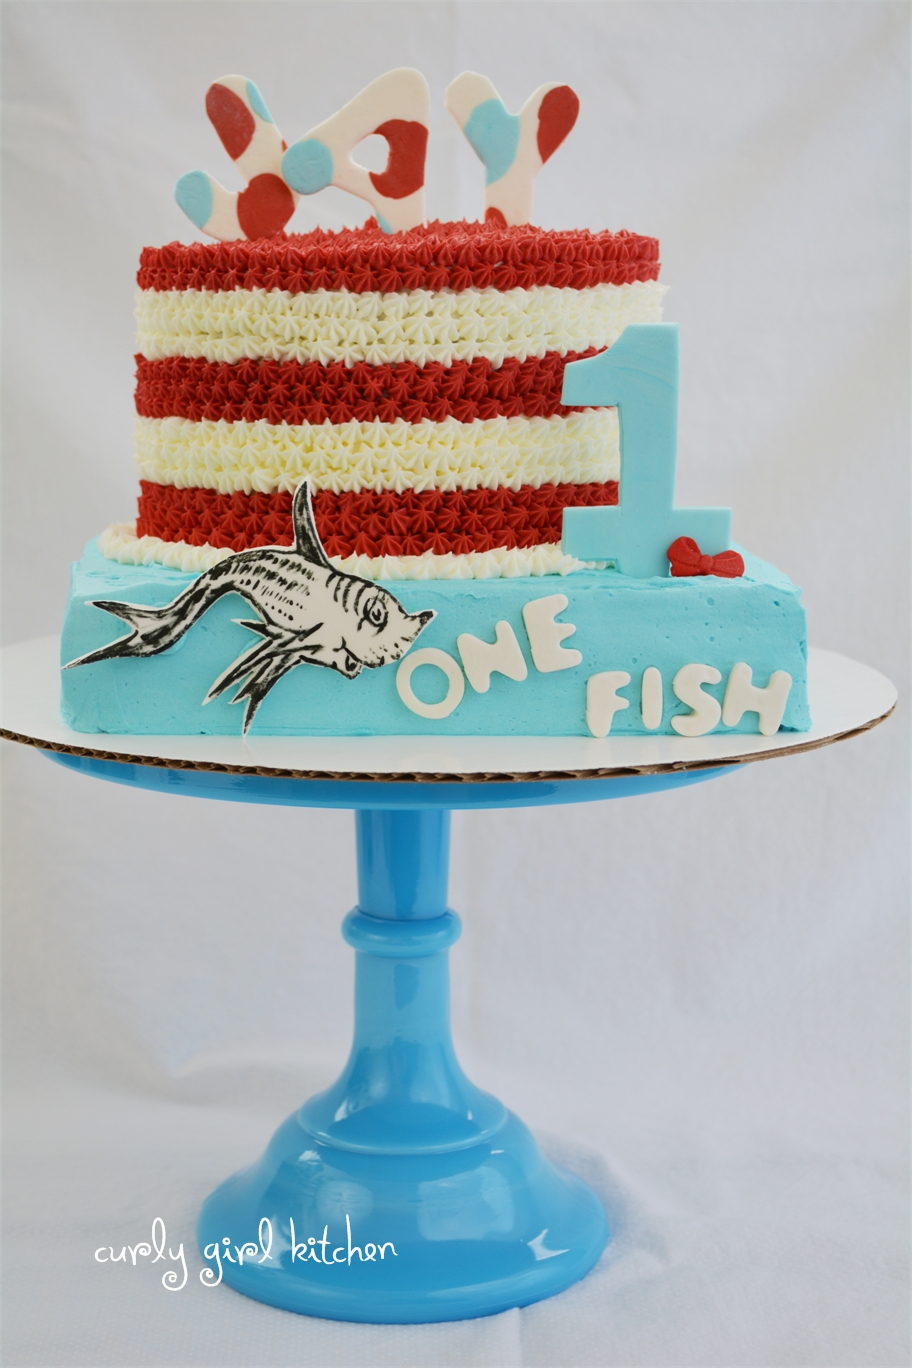 Fantastic Curly Girl Kitchen Dr Seuss Cake And Cupcakes Funny Birthday Cards Online Alyptdamsfinfo